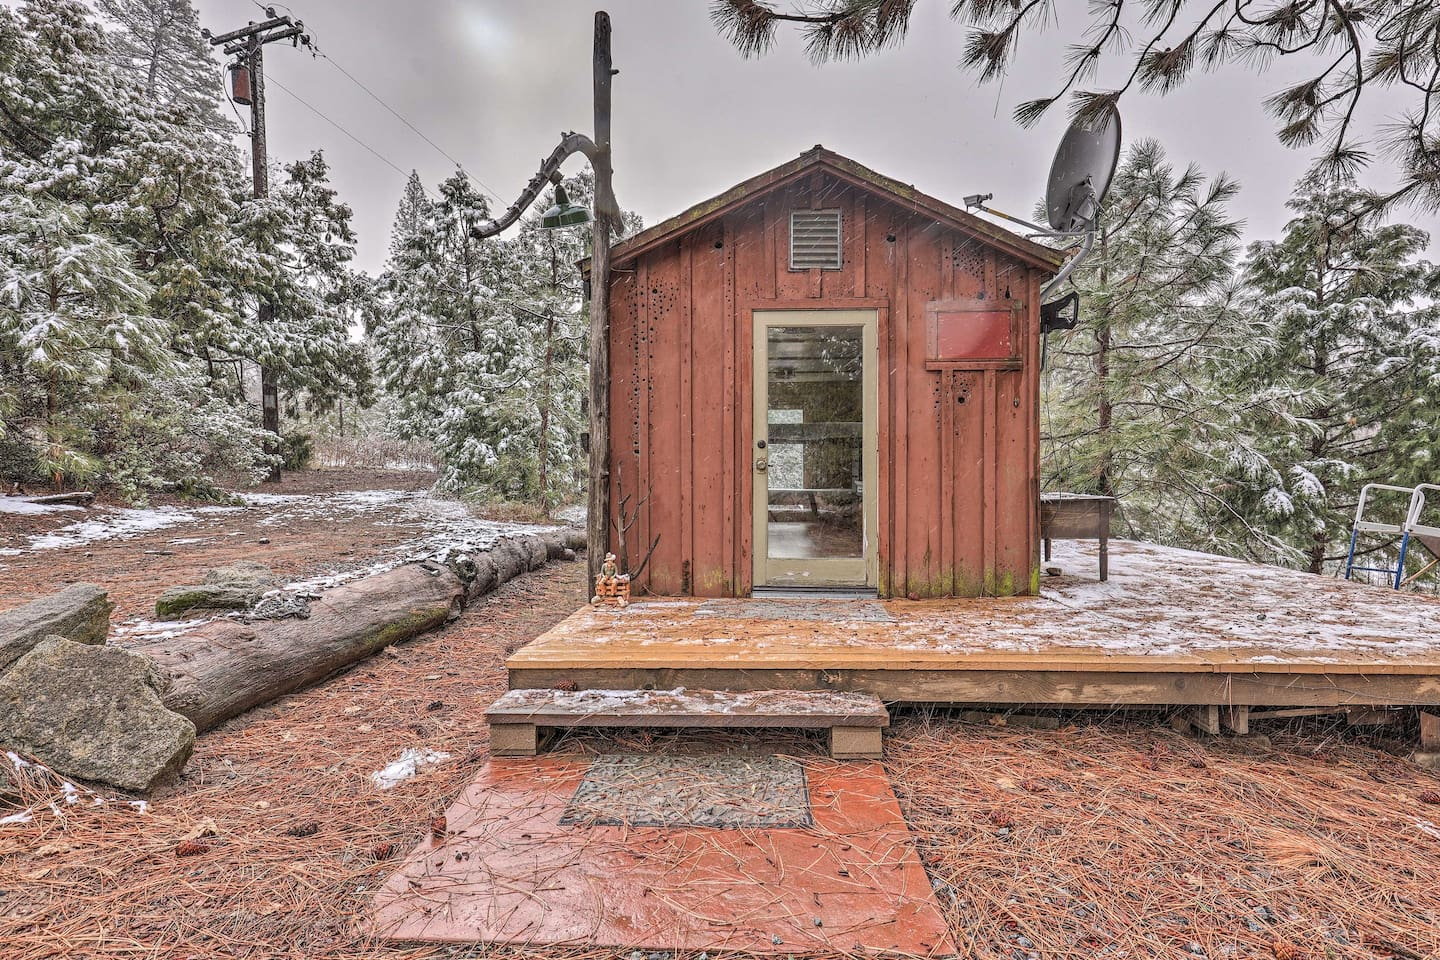 This detached bunkhouse sleeps 4.